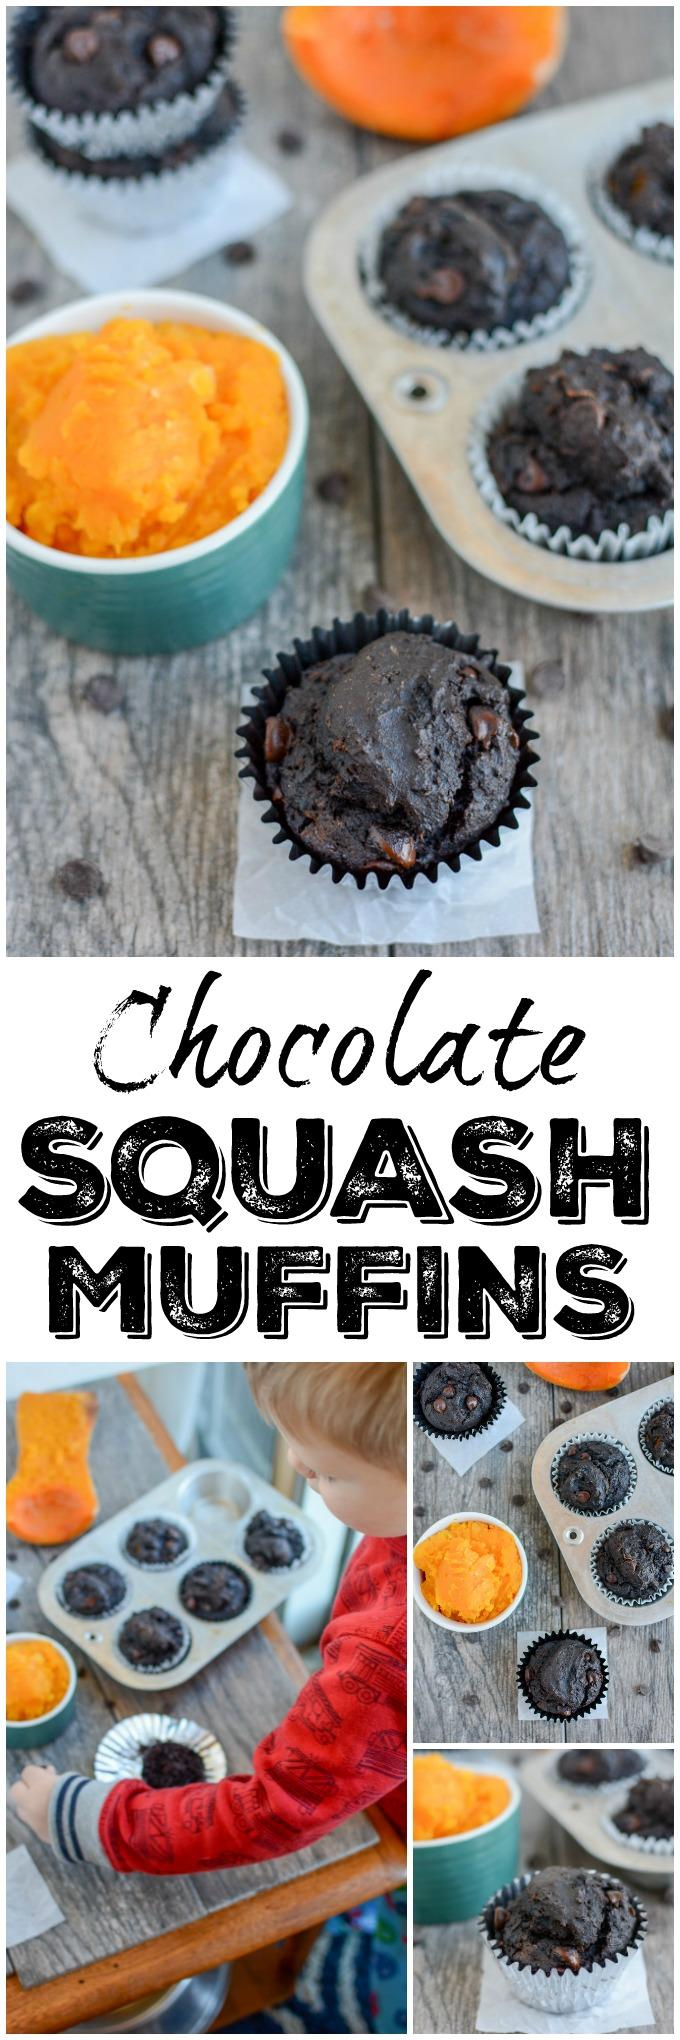 These Chocolate Squash Muffins can be eaten on the run for a grab and go breakfast and also make an easy, kid-friendly snack!